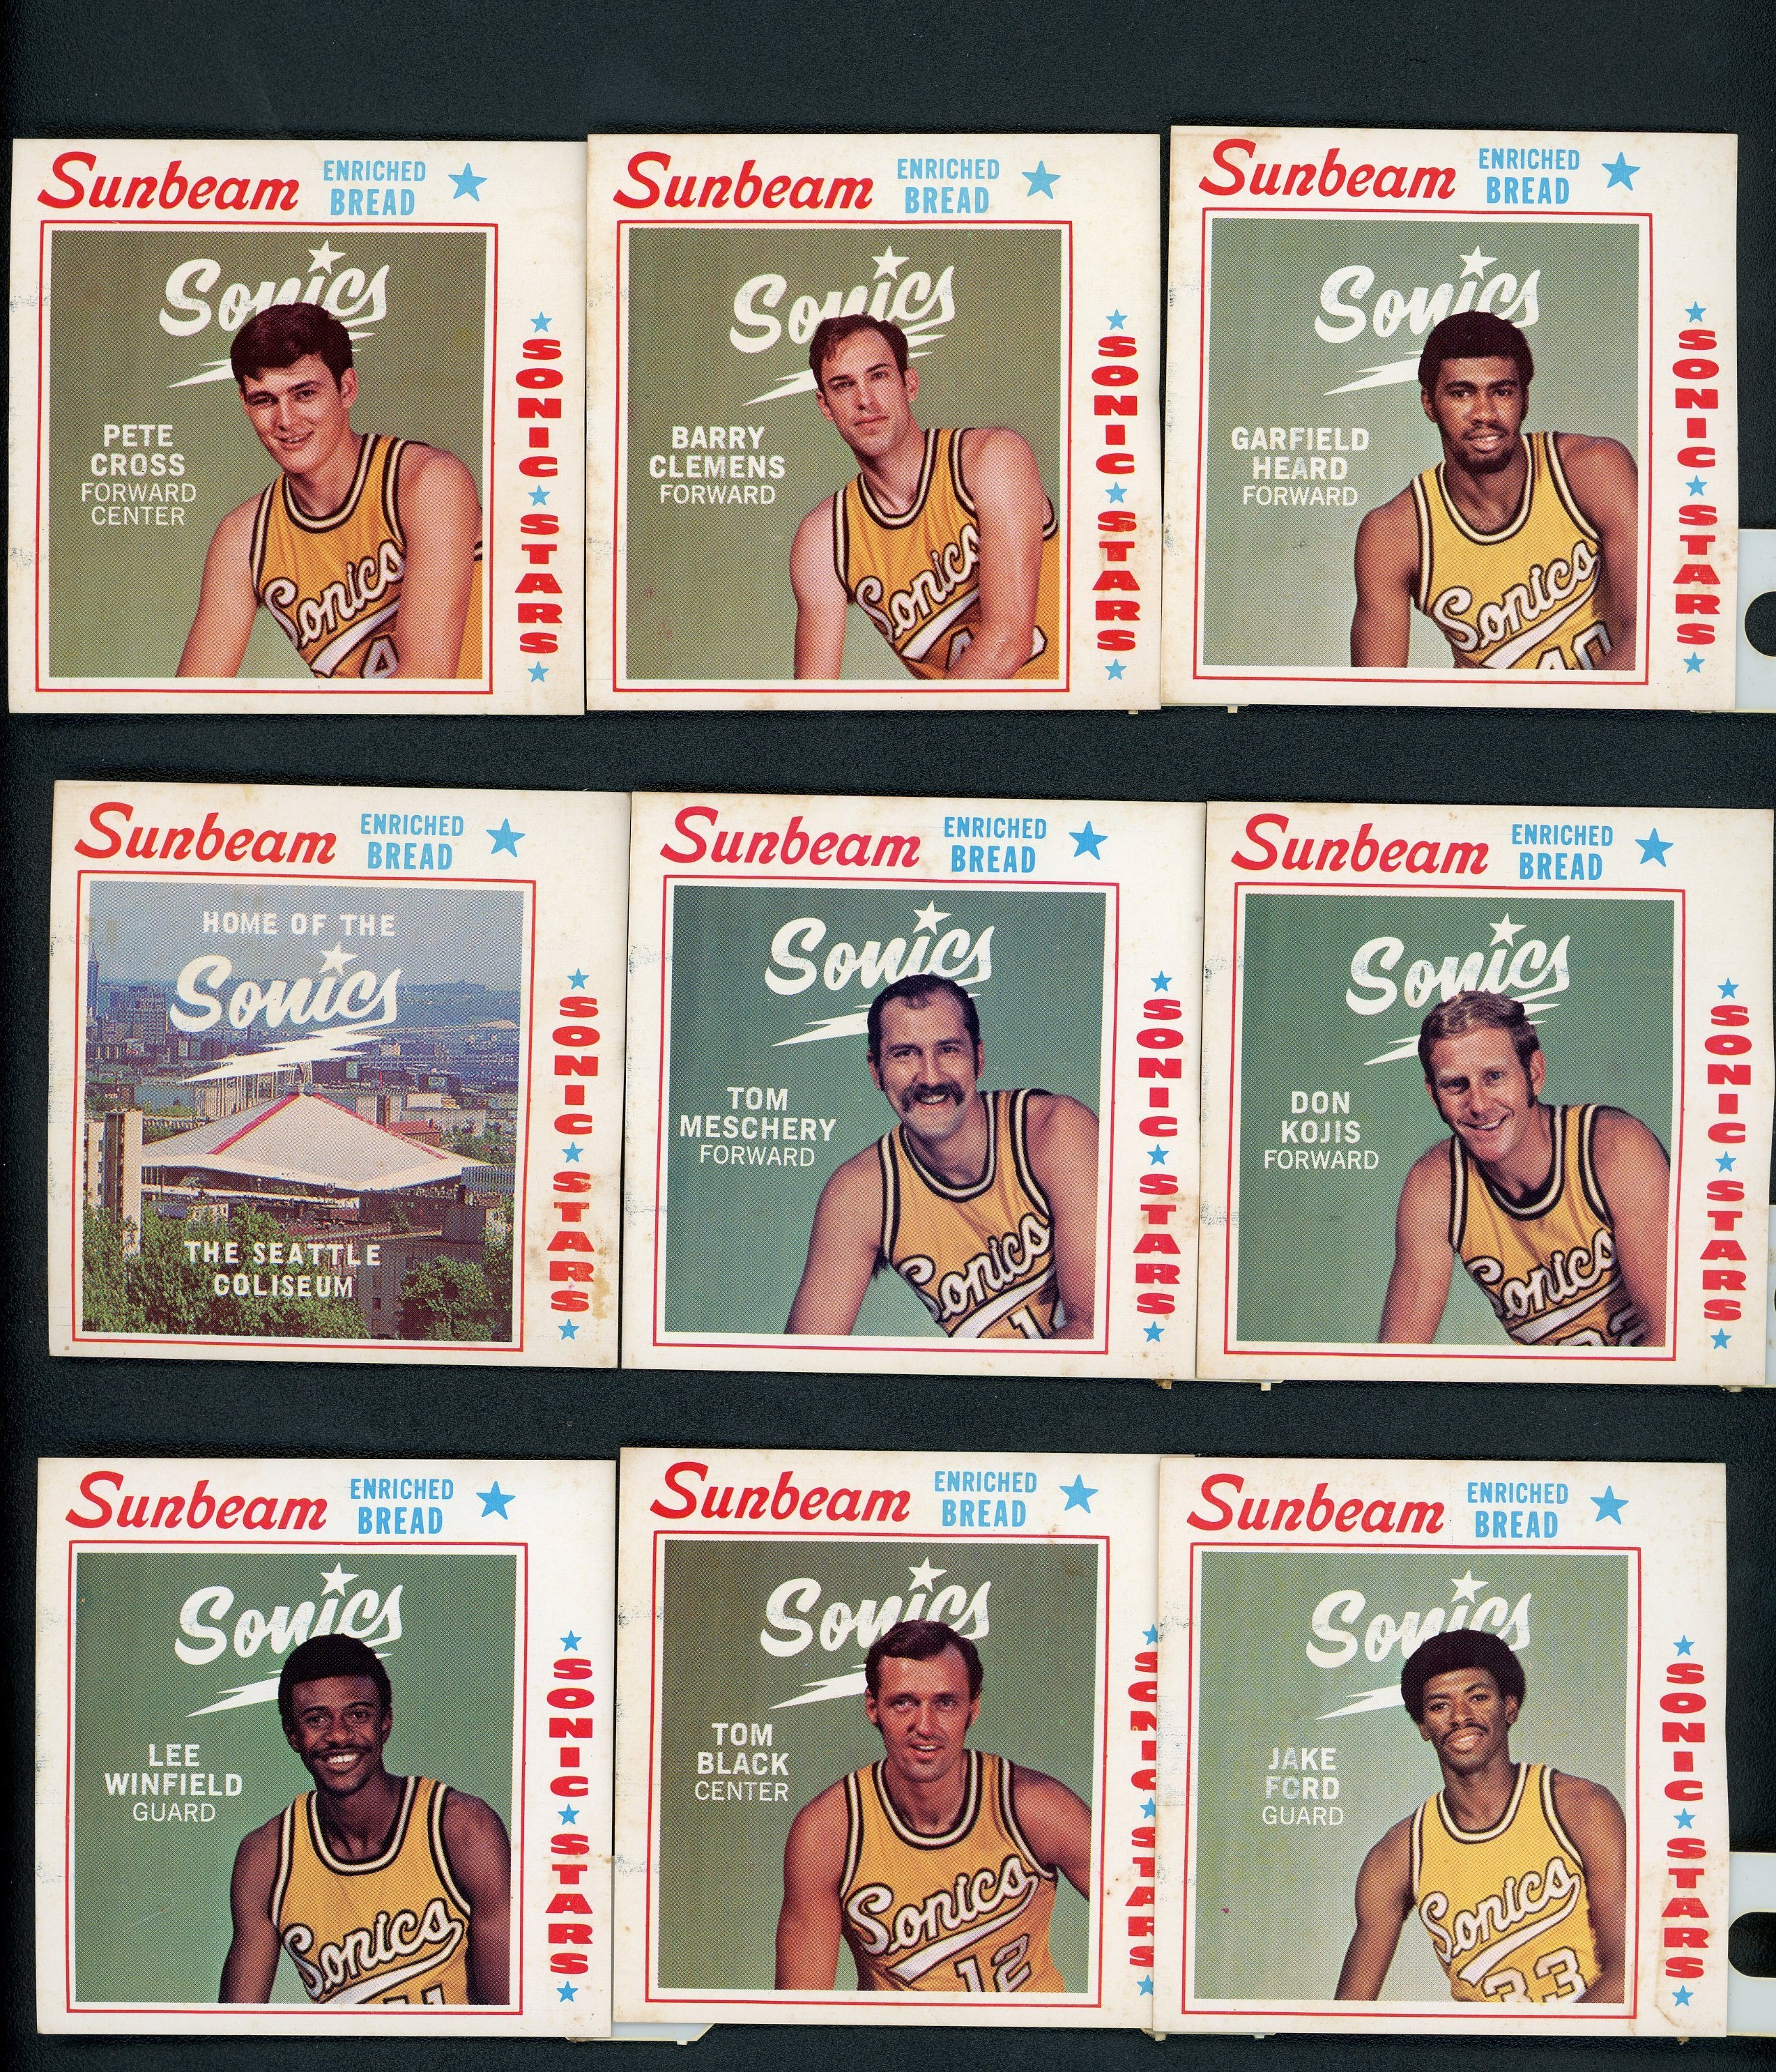 1970 Seattle Sonics Sunbeam Bread Tags (8)